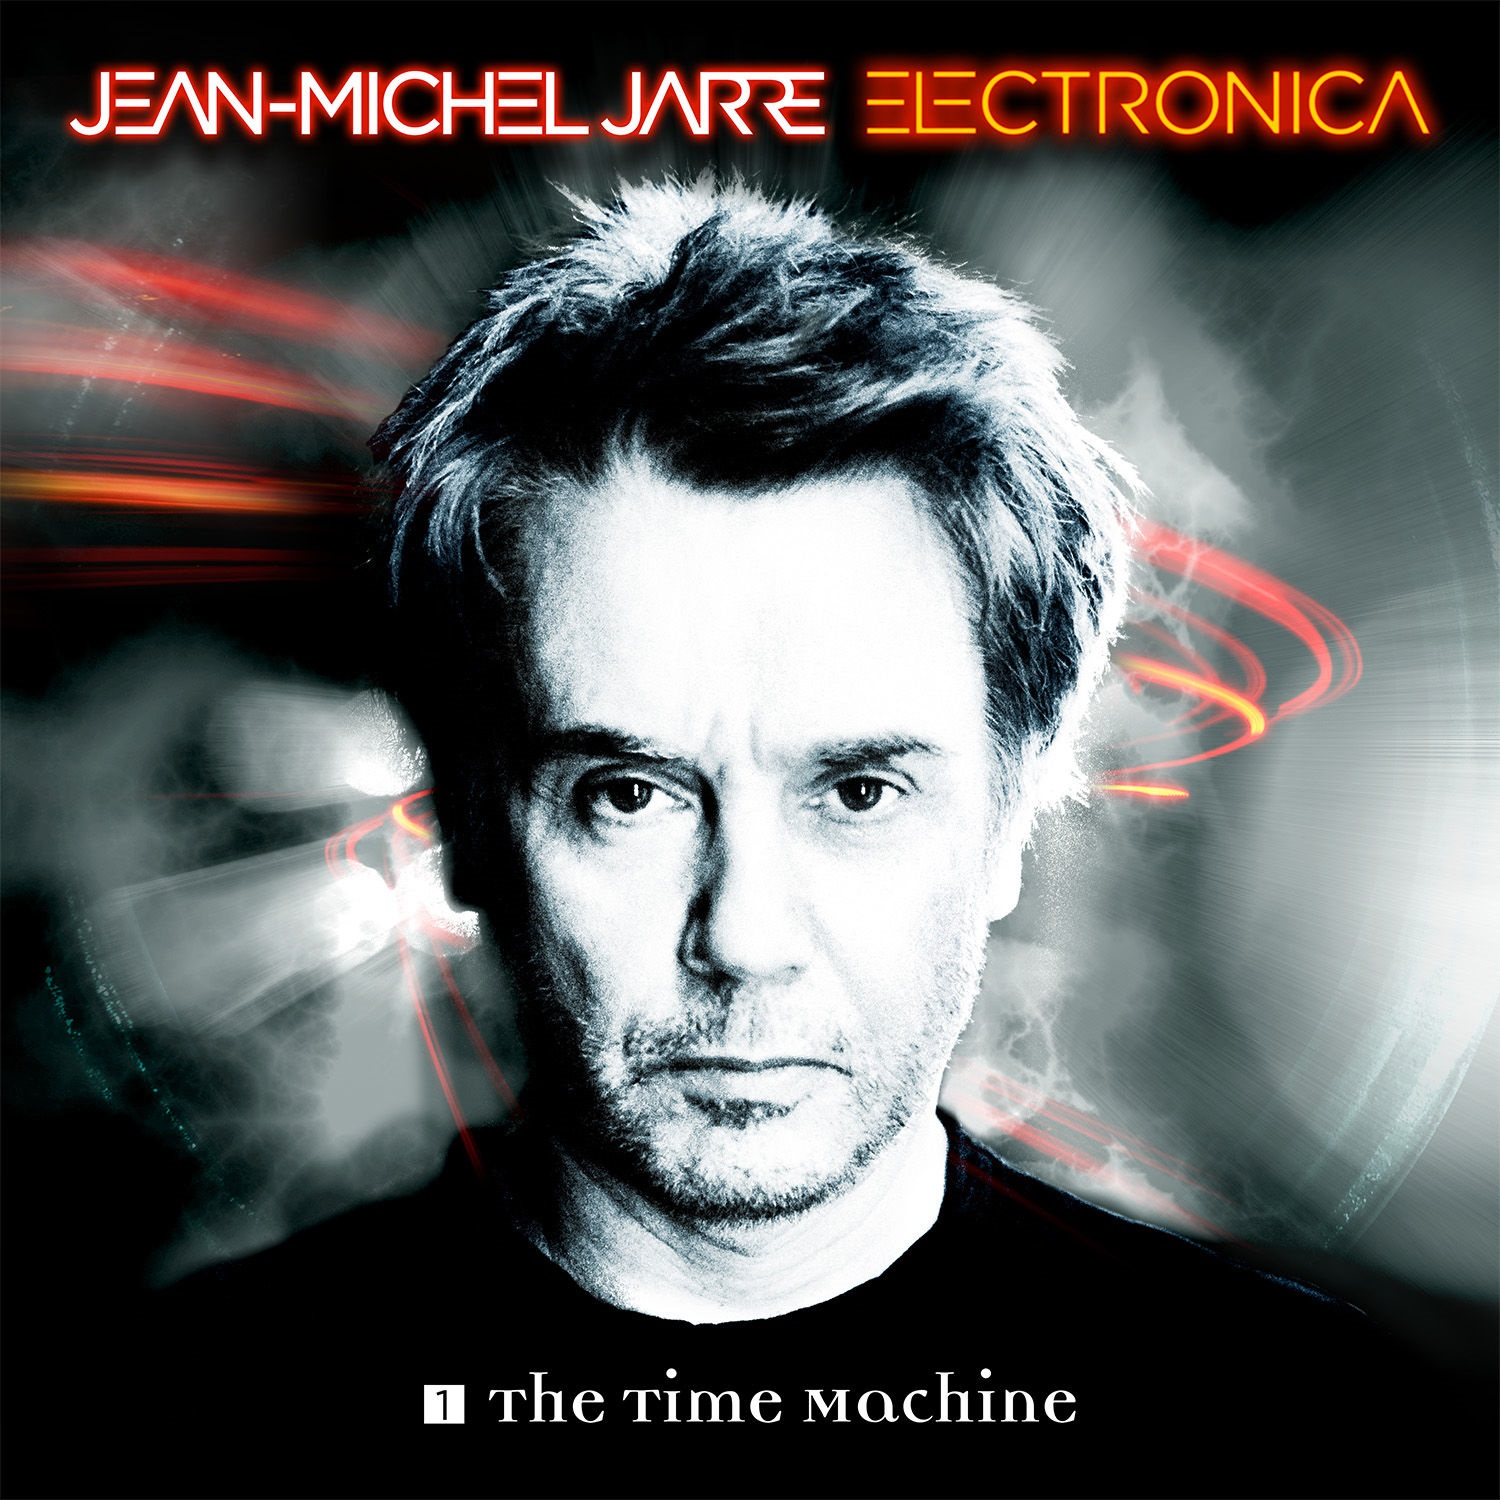 цена на Jean Michel Jarre: Electronica 1 – The Time Machine (CD)